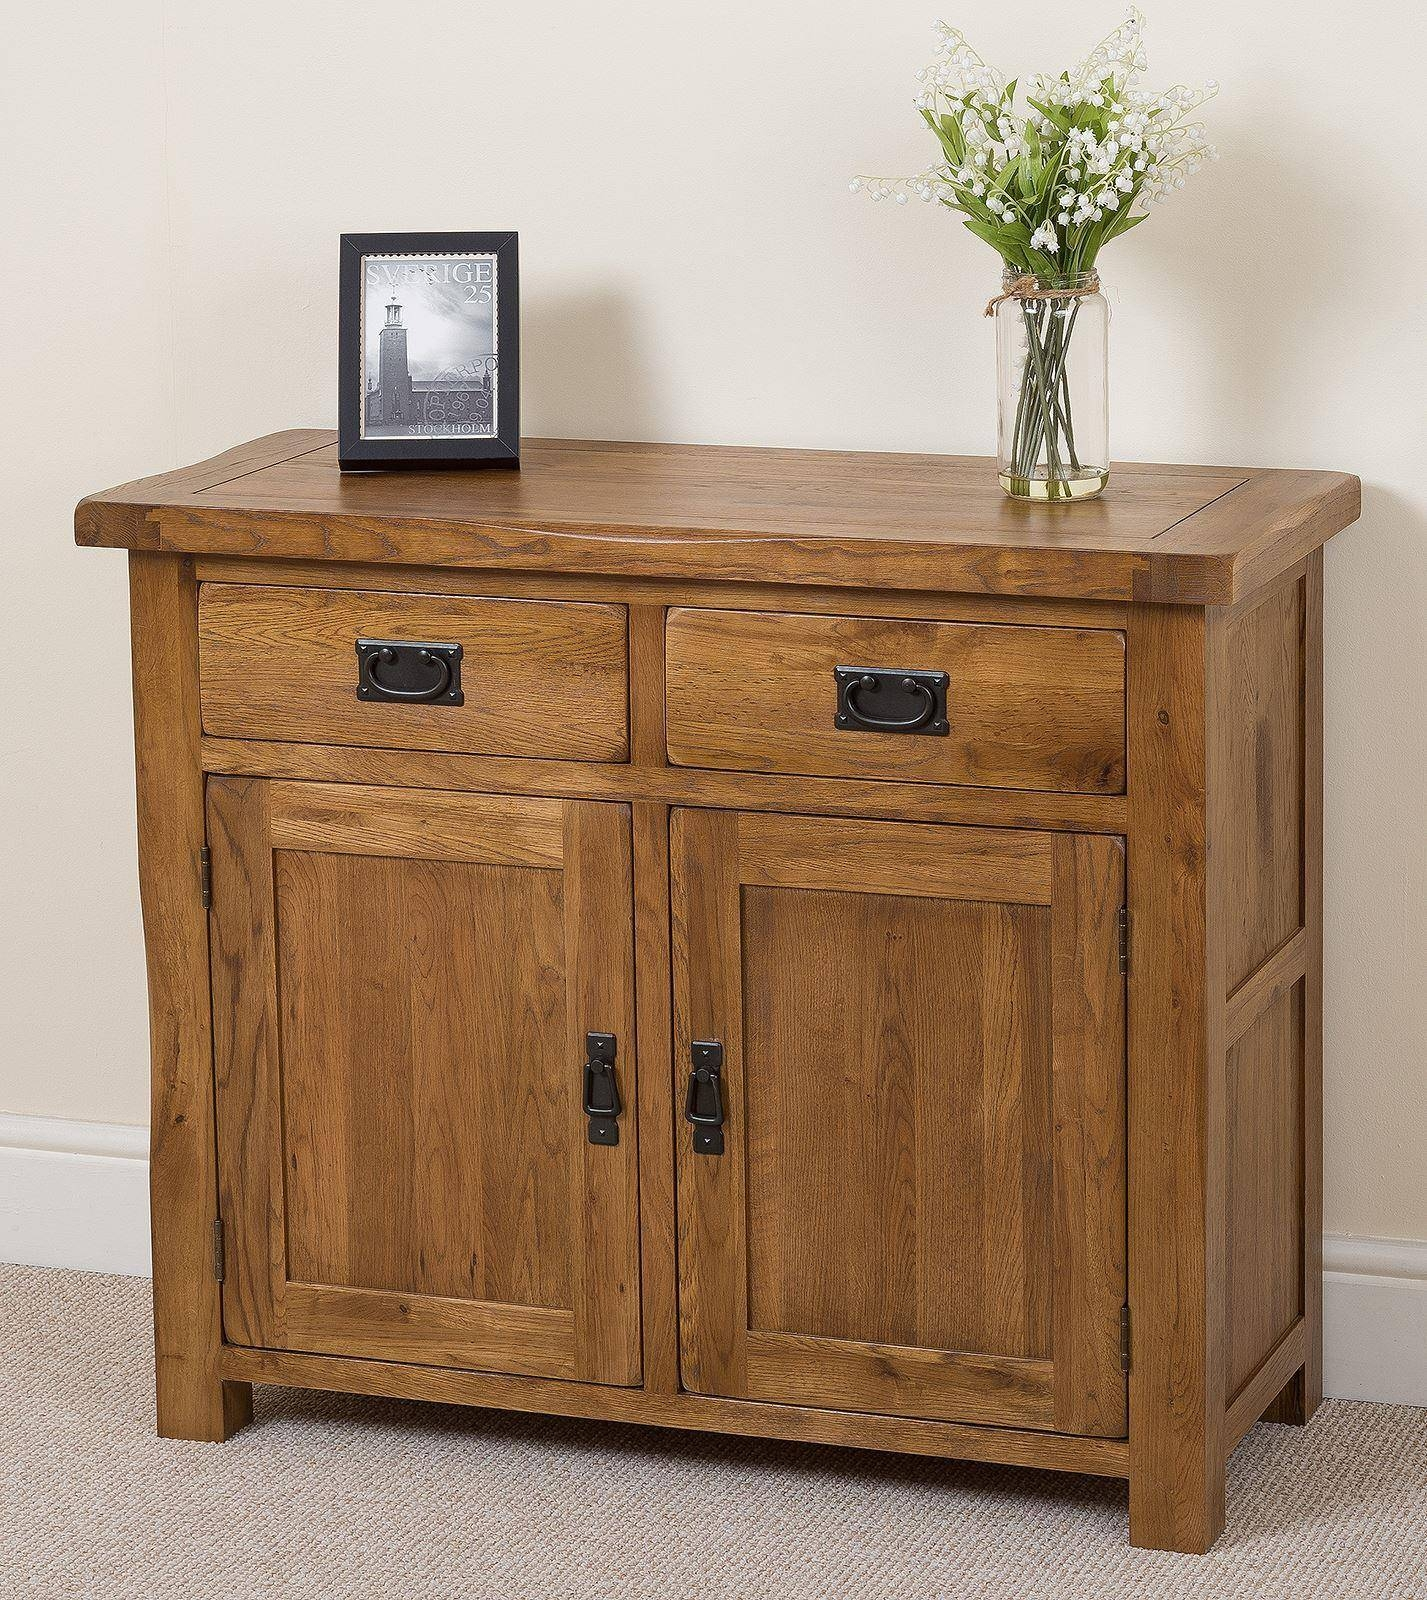 Cotswold Rustic Solid Oak Small Sideboard | Oak Furniture King in Oak Sideboards (Image 4 of 30)